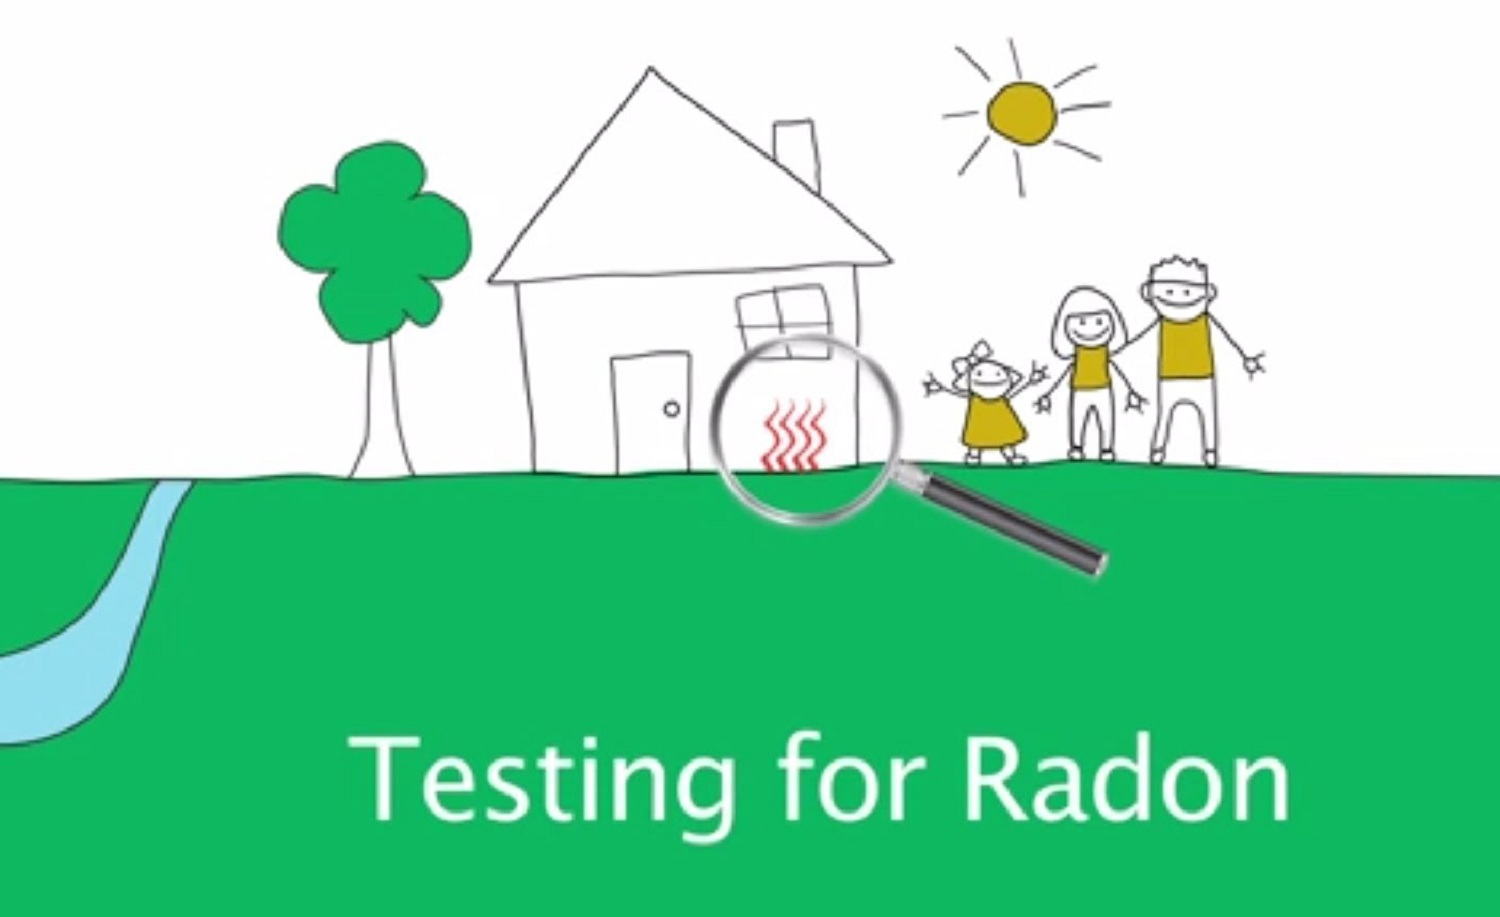 Should You Hire a Qualified Radon Tester or Do It Yourself